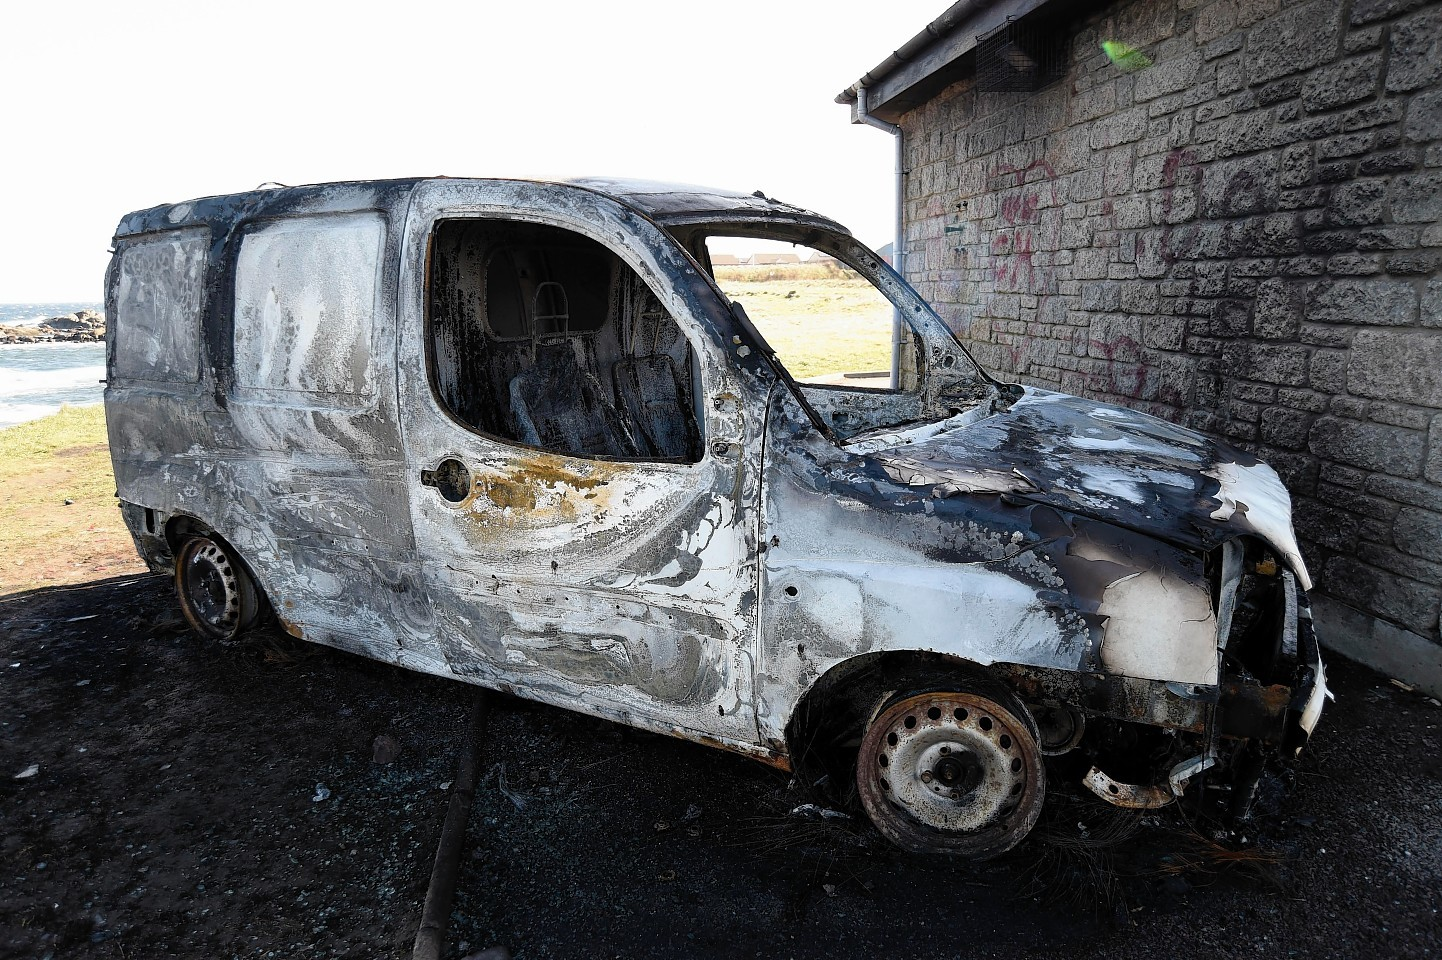 The burned out van